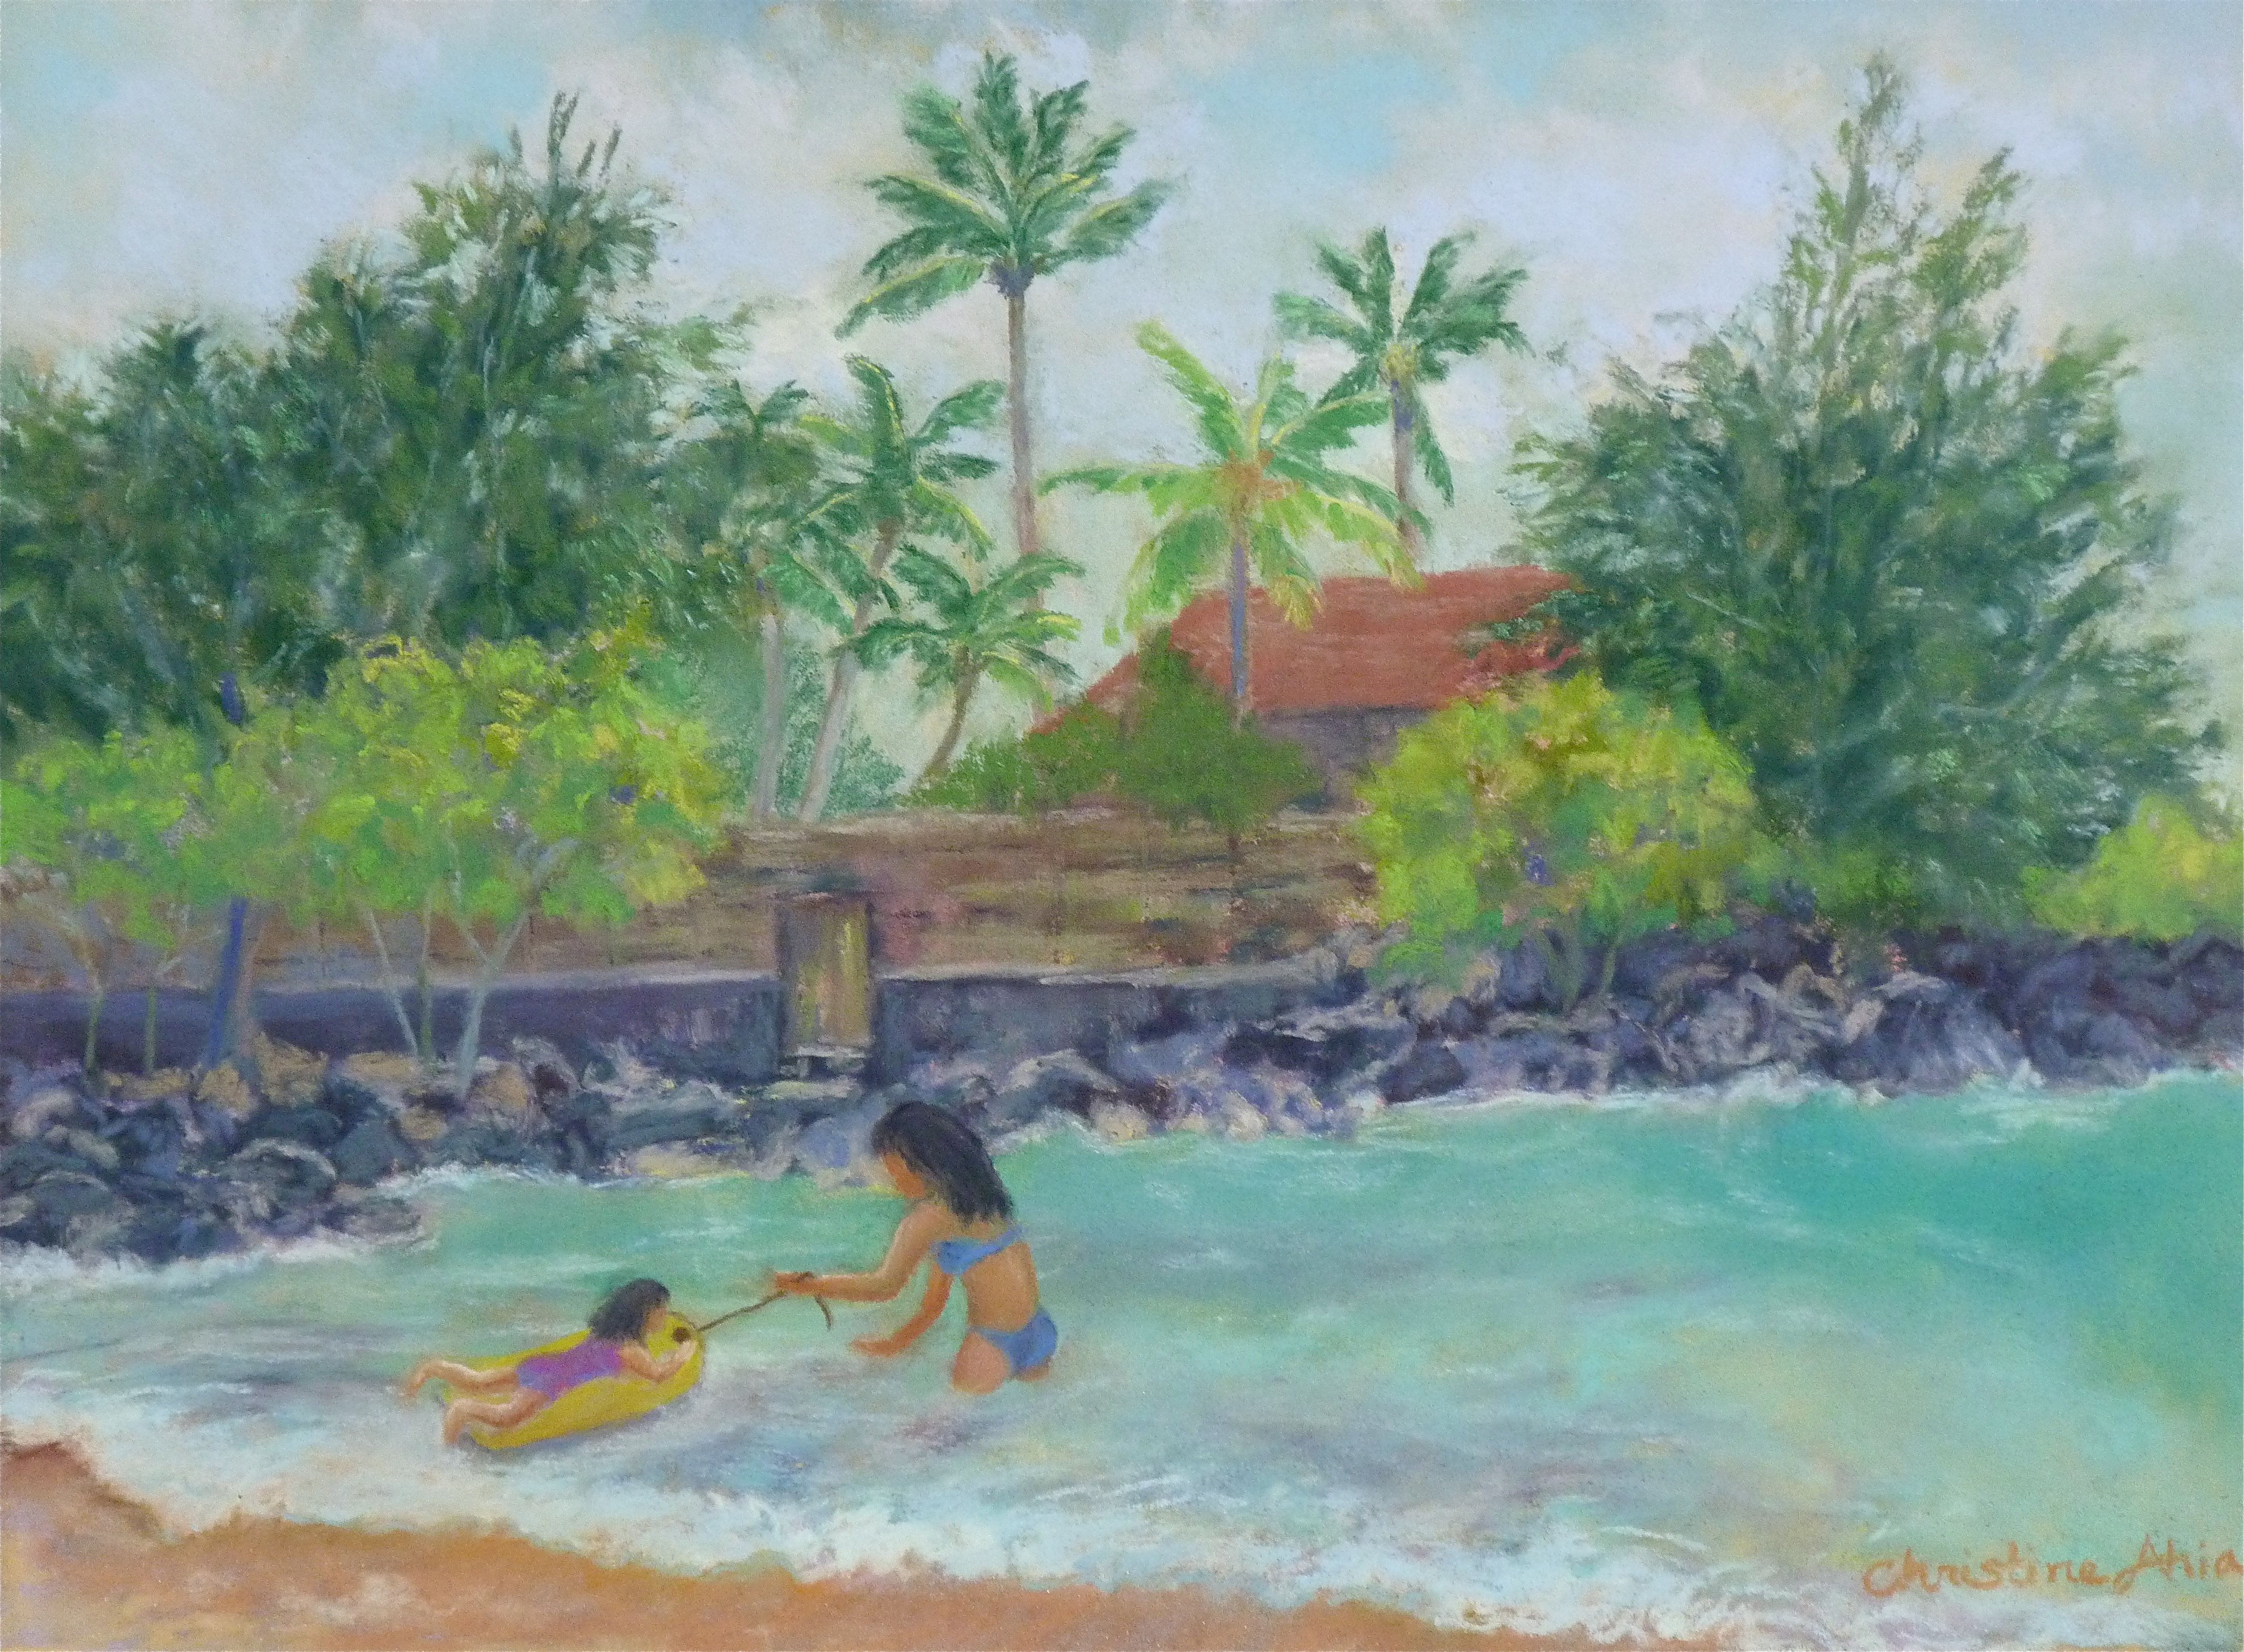 Playing at Waialea Bay, 12x9, $325